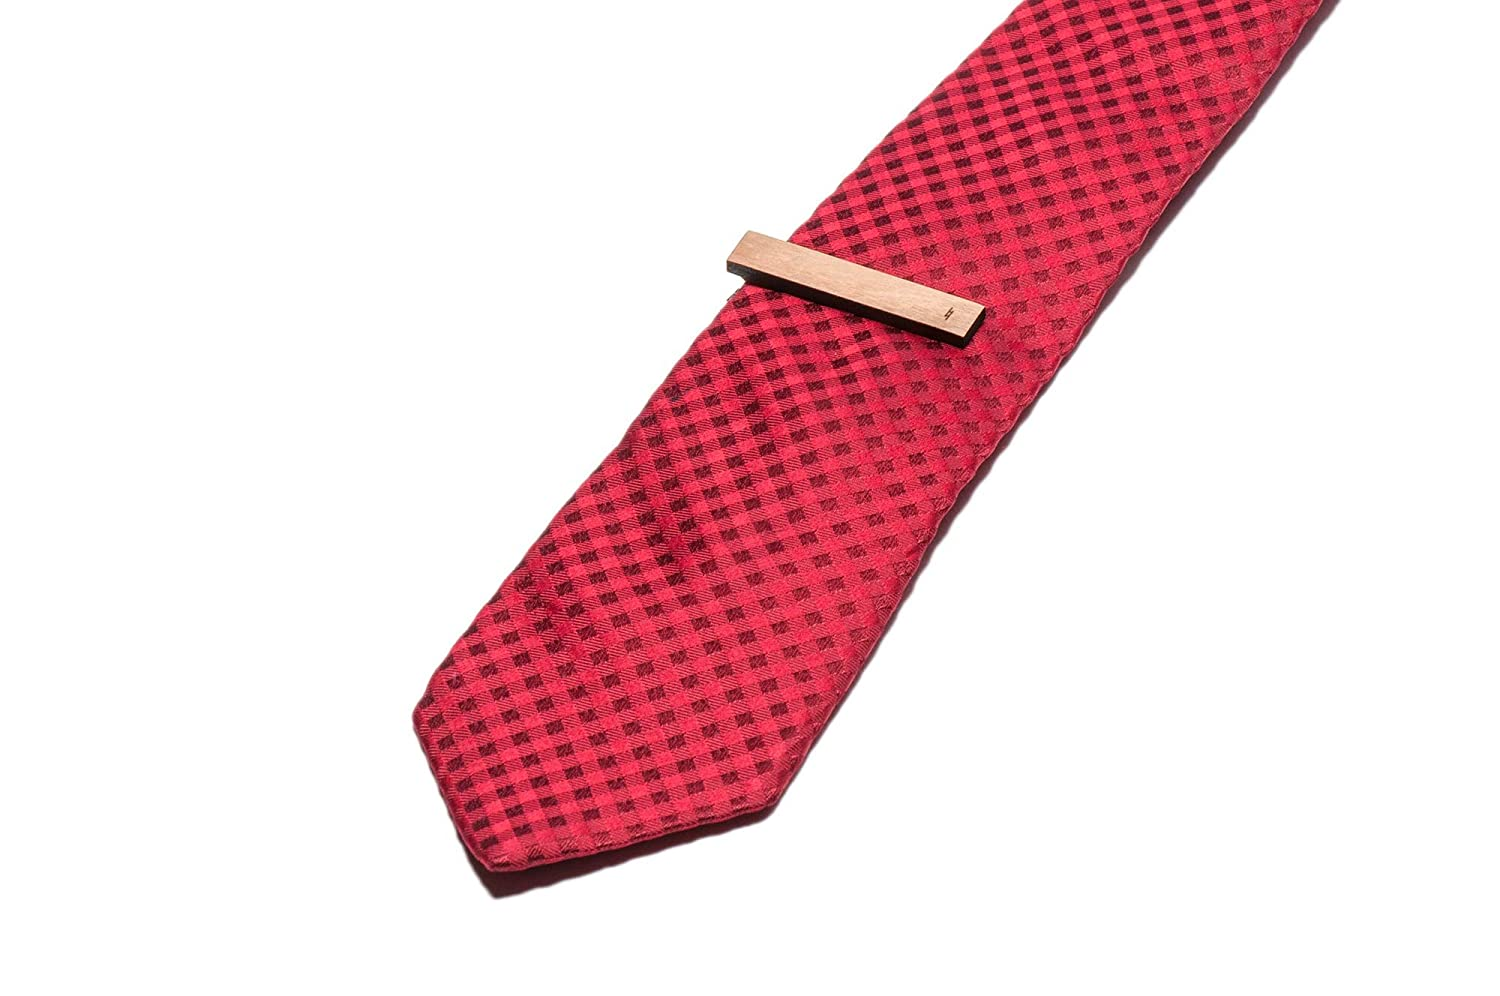 Wooden Accessories Company Wooden Tie Clips with Laser Engraved Natural Sign Design Cherry Wood Tie Bar Engraved in The USA